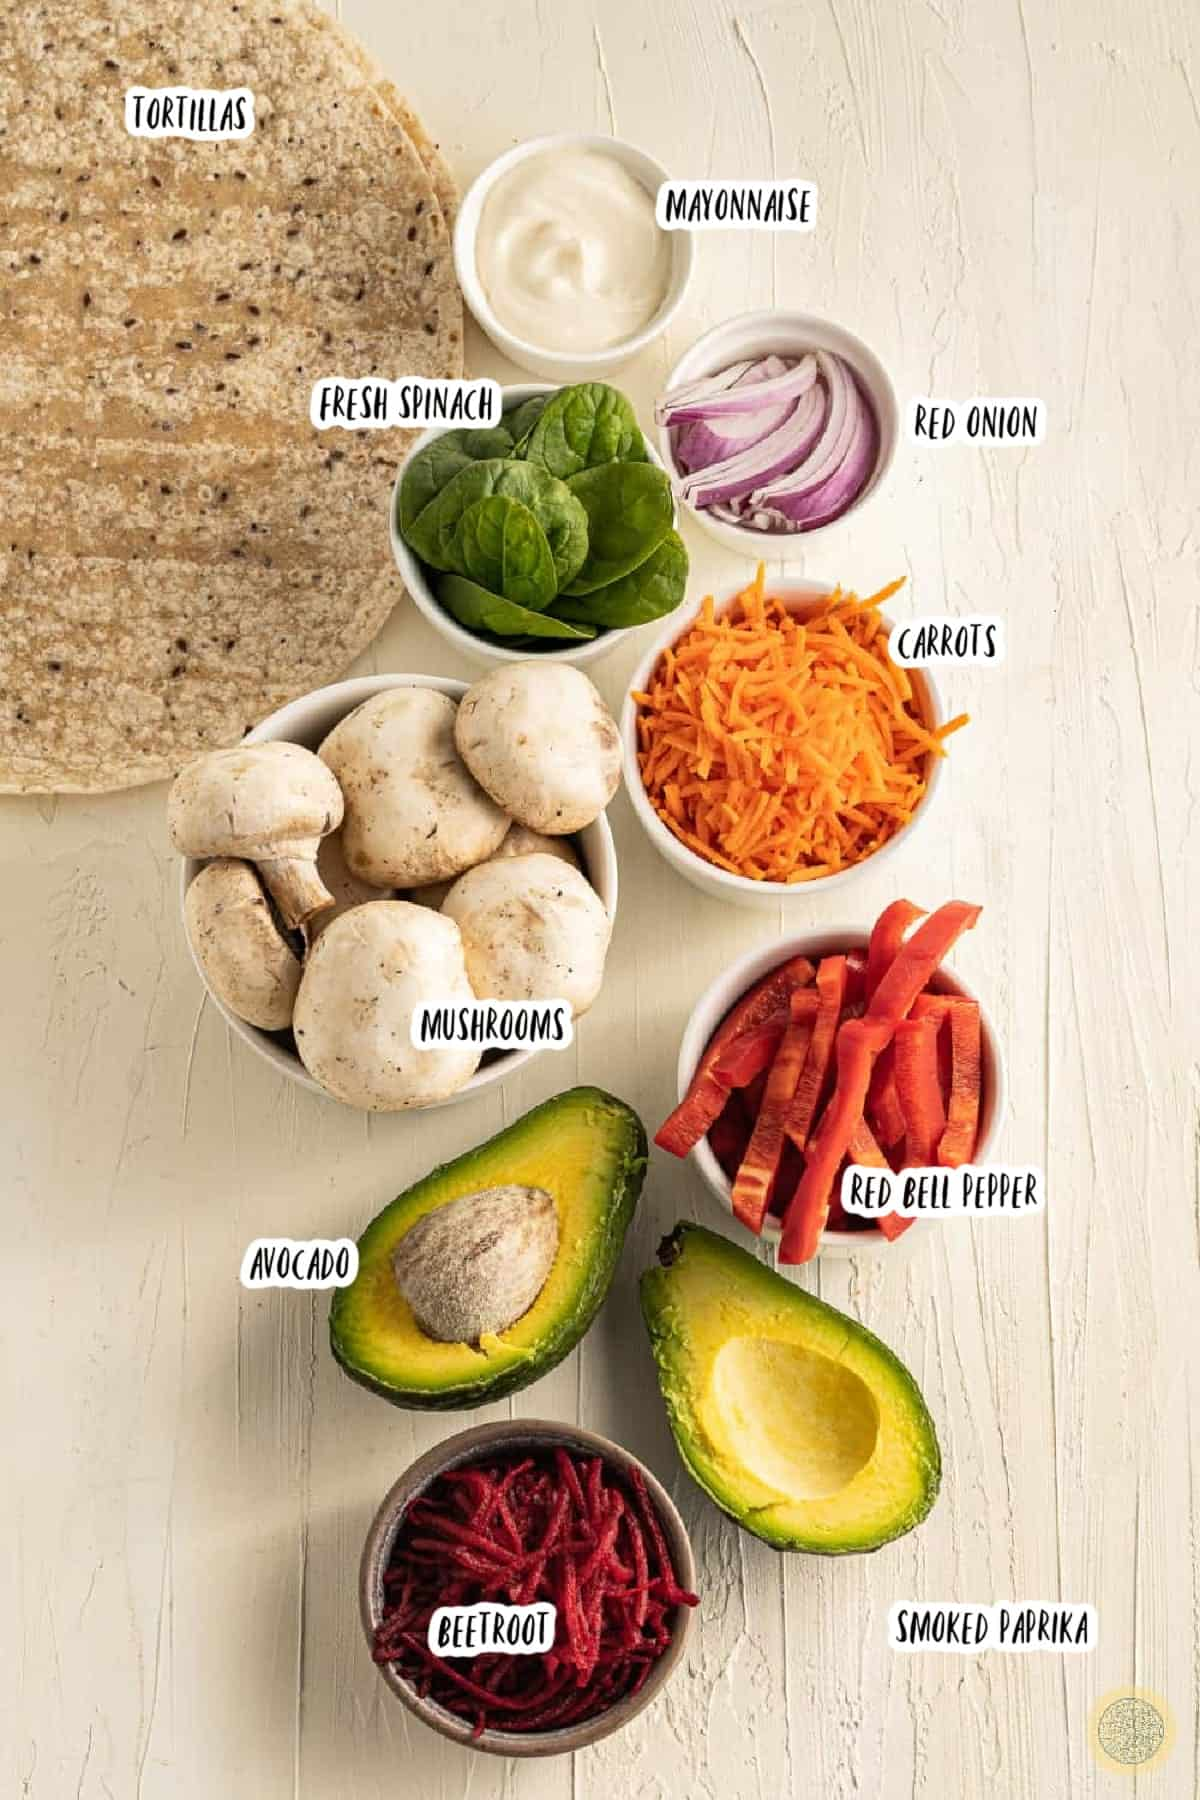 Ingredients you'll need for a vegan wrap